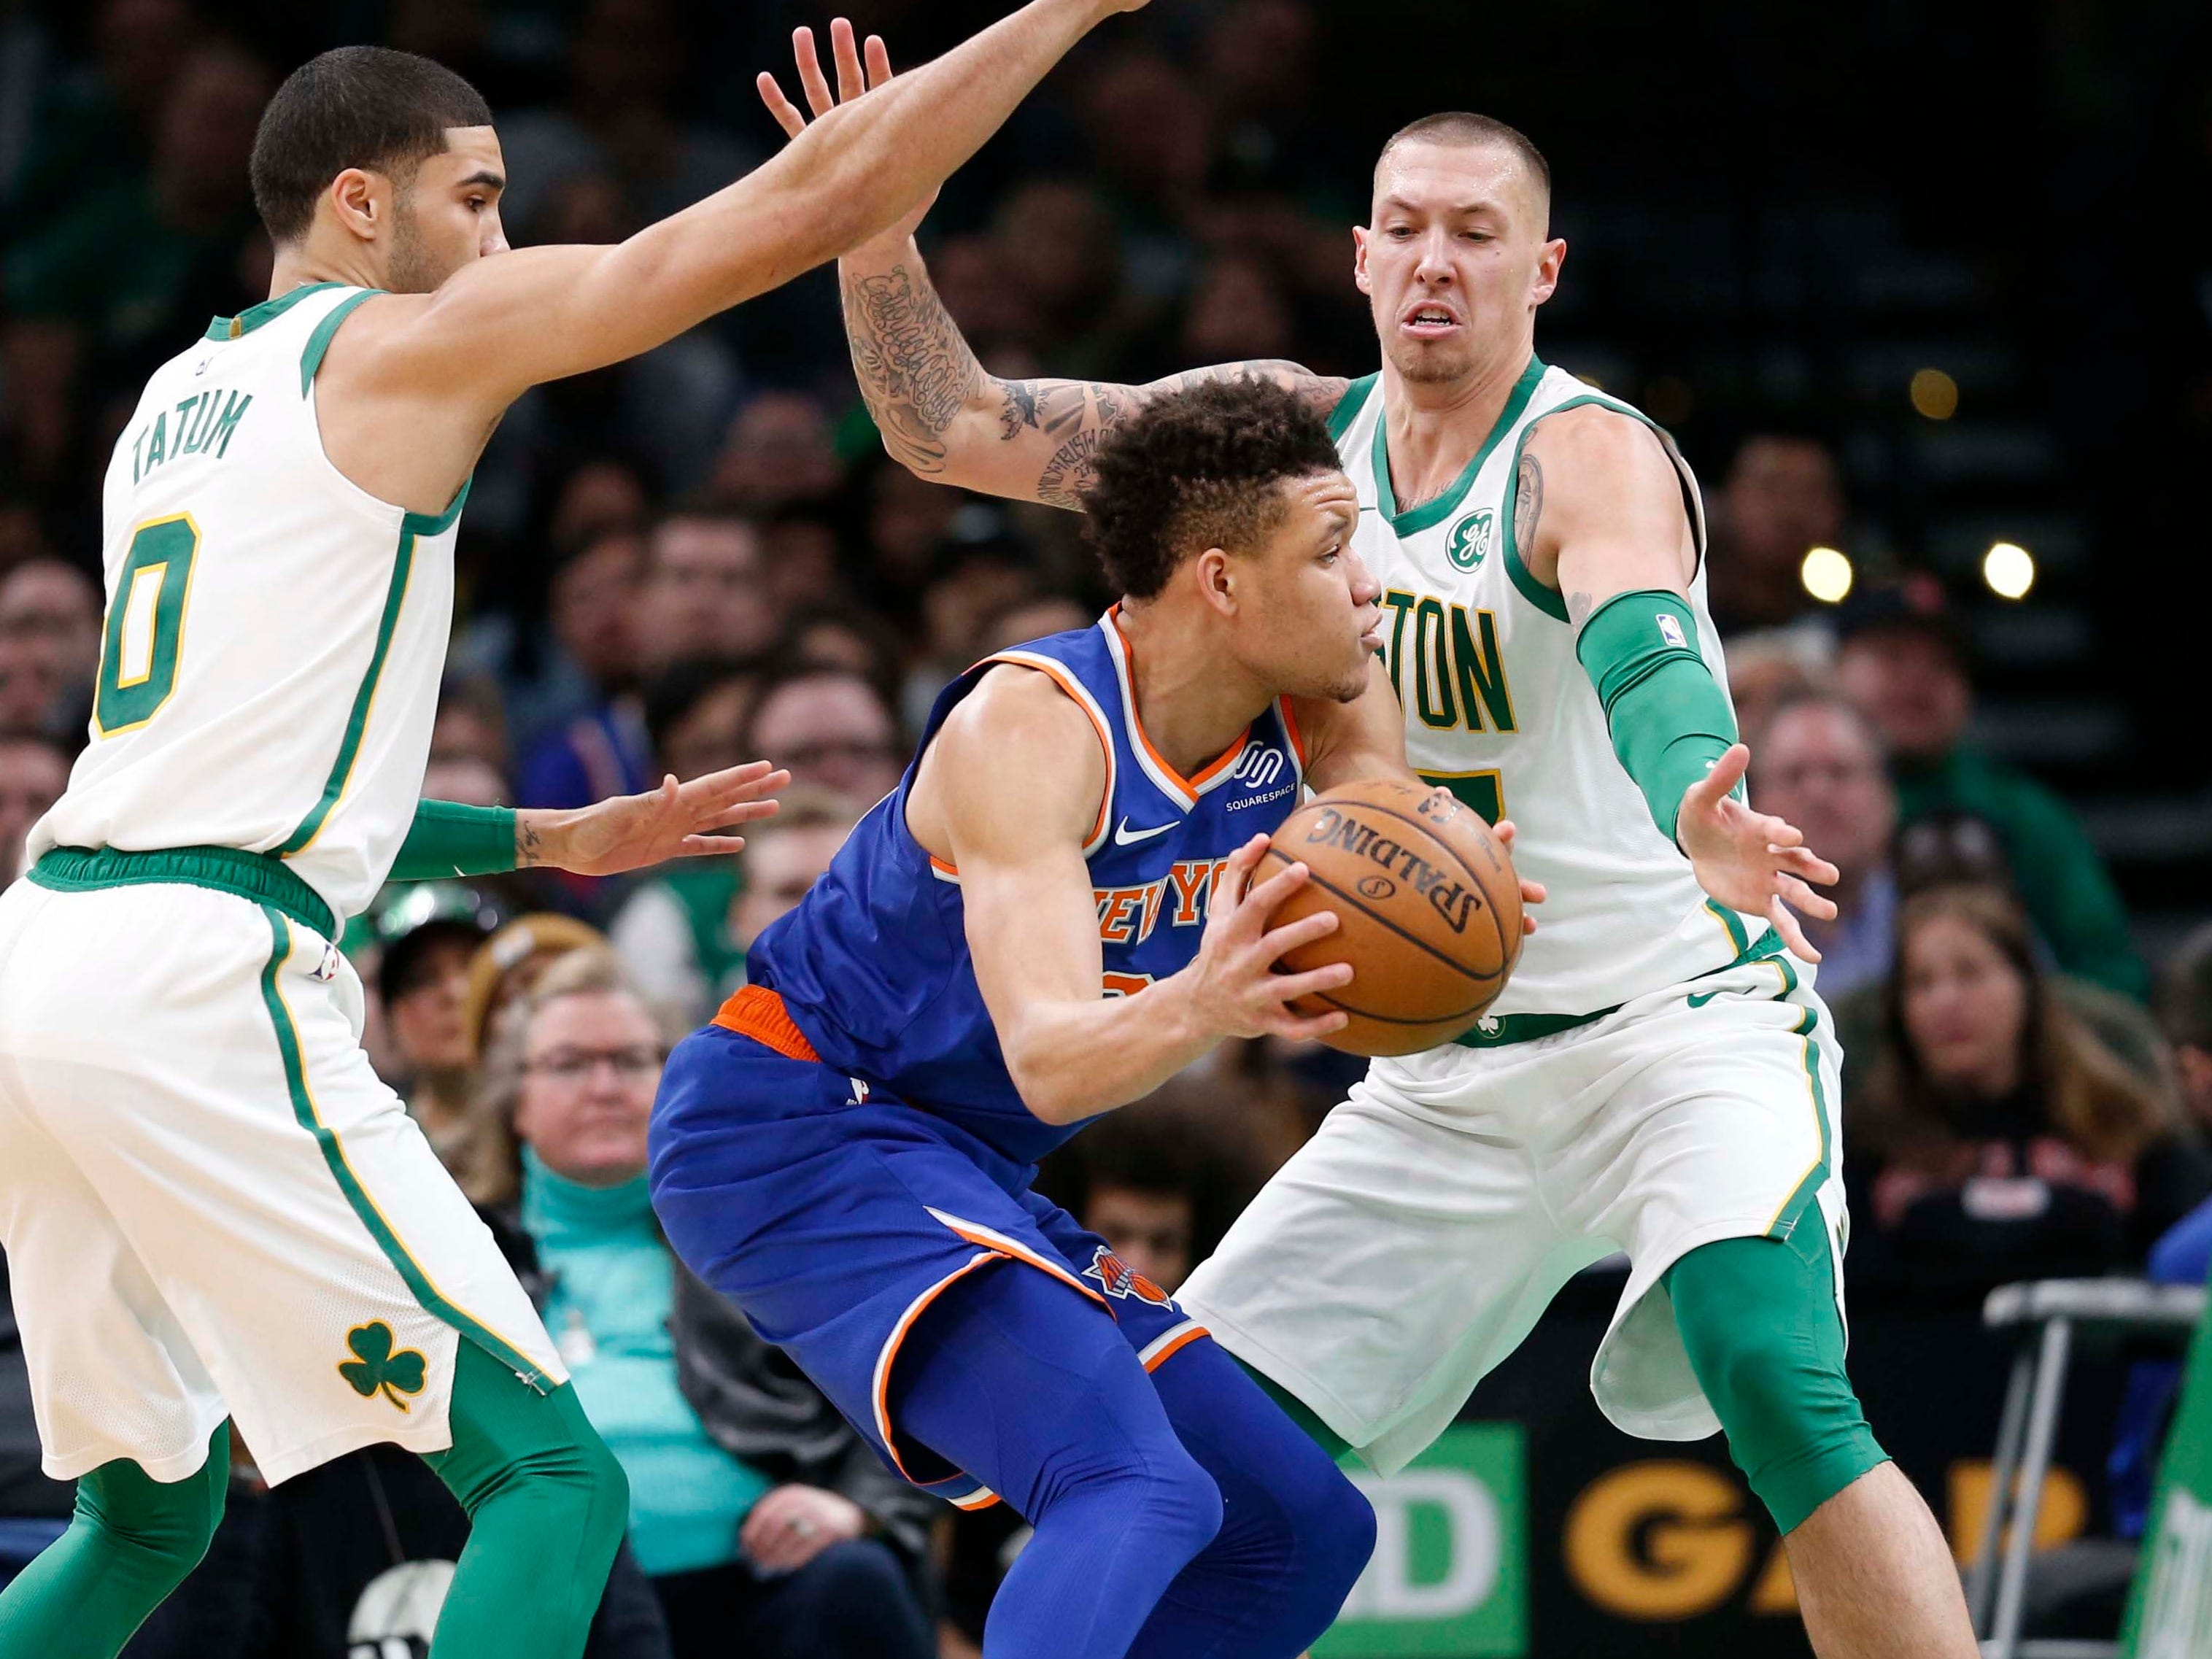 Dec. 6: Knicks forward Kevin Knox (20) tries to pass out of the double-team by Celtics defenders Jayson Tatum (0) and Daniel Theis (27) during the second half in Boston.